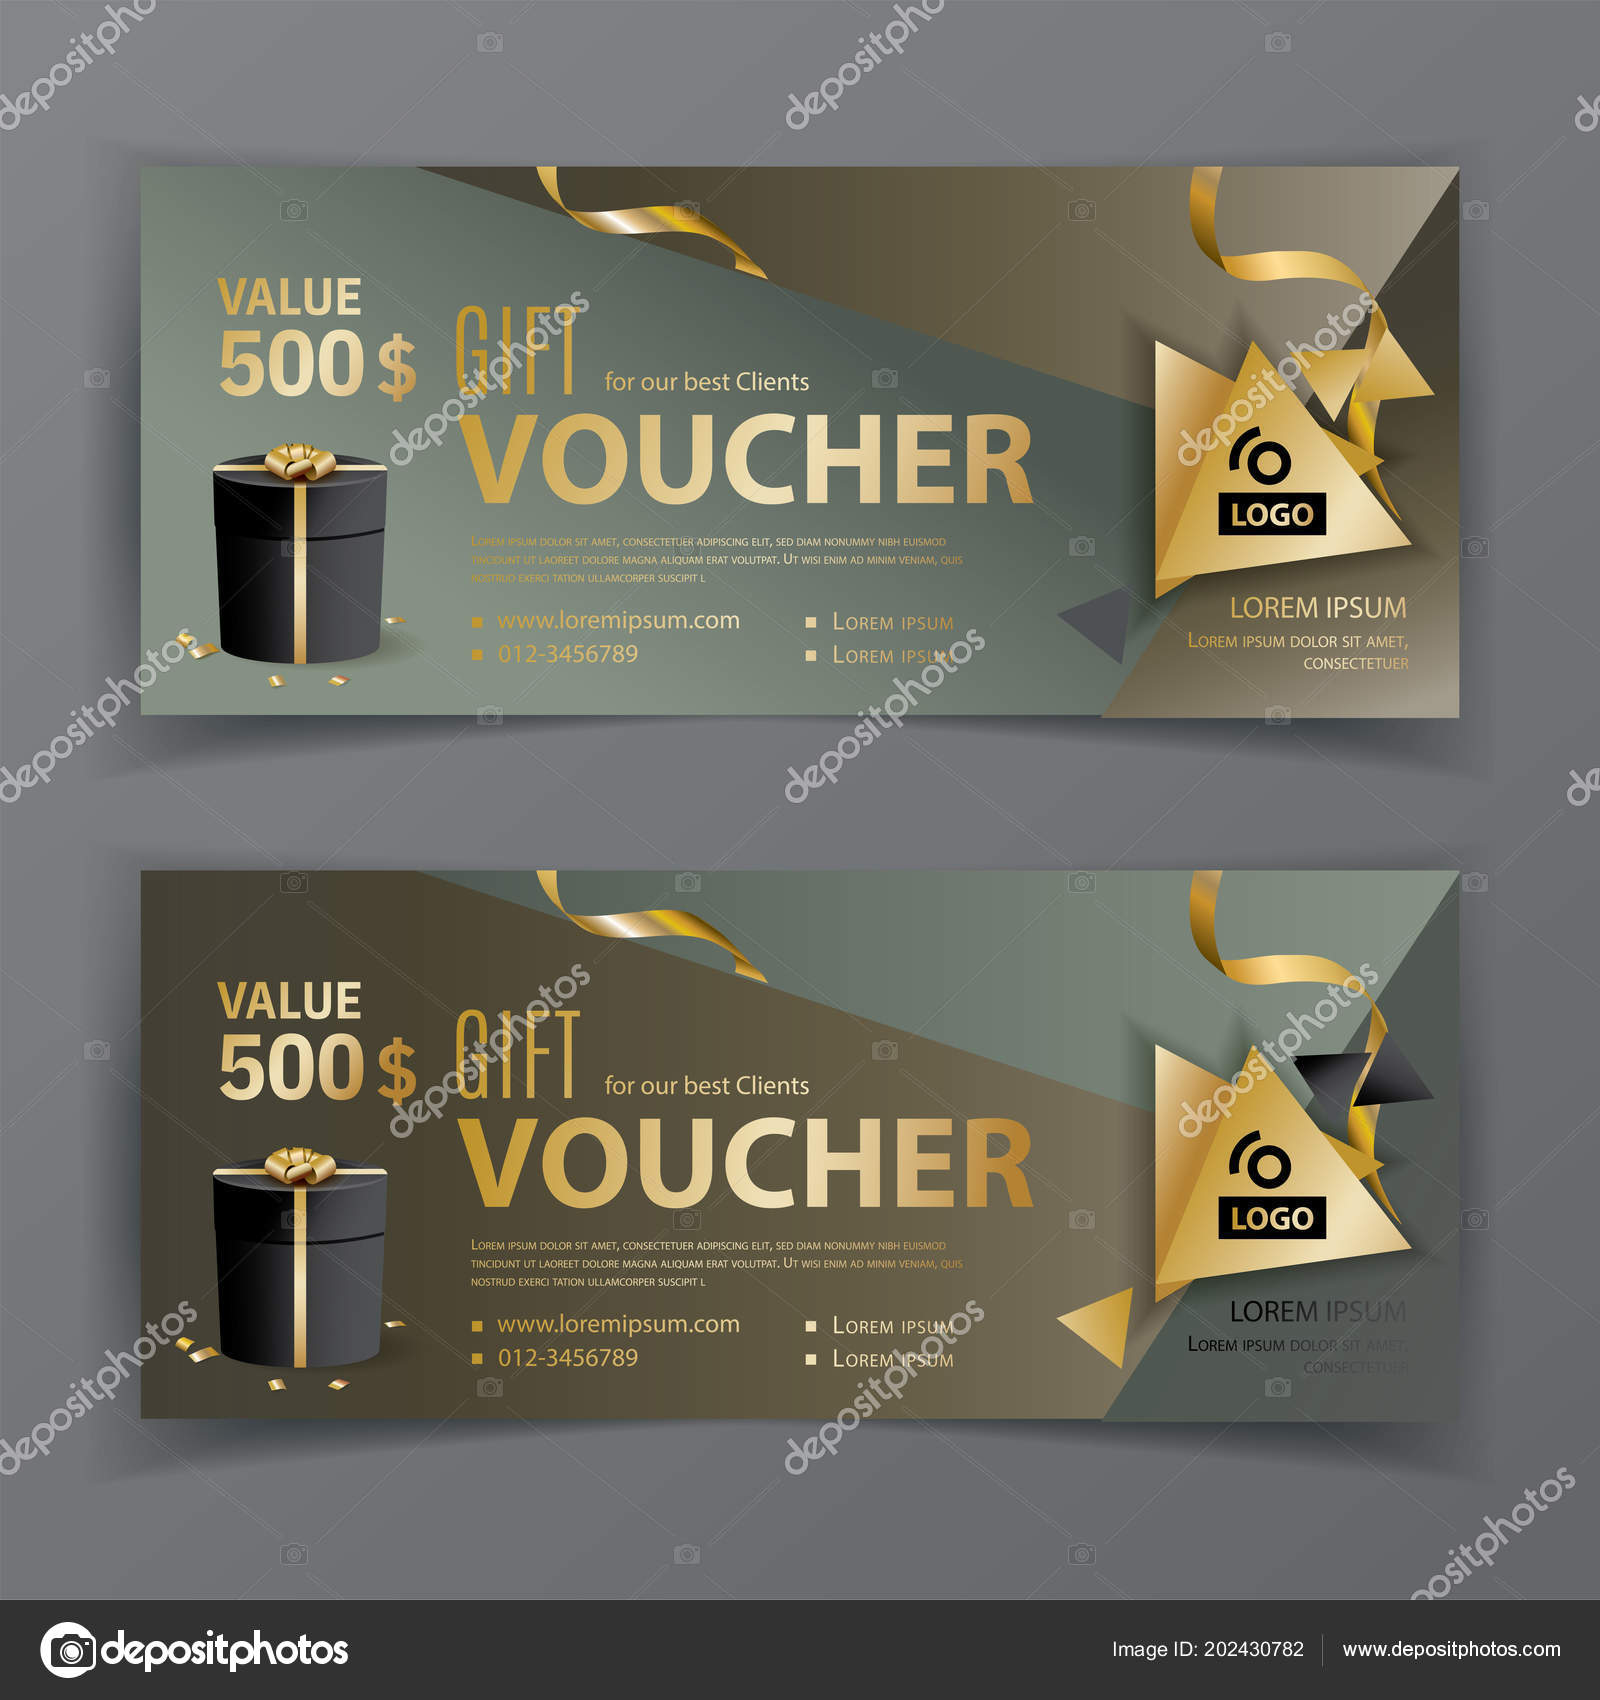 Vector voucher template universal flyer for business dark green vector voucher template universal flyer for business dark green brown gold design cheaphphosting Gallery